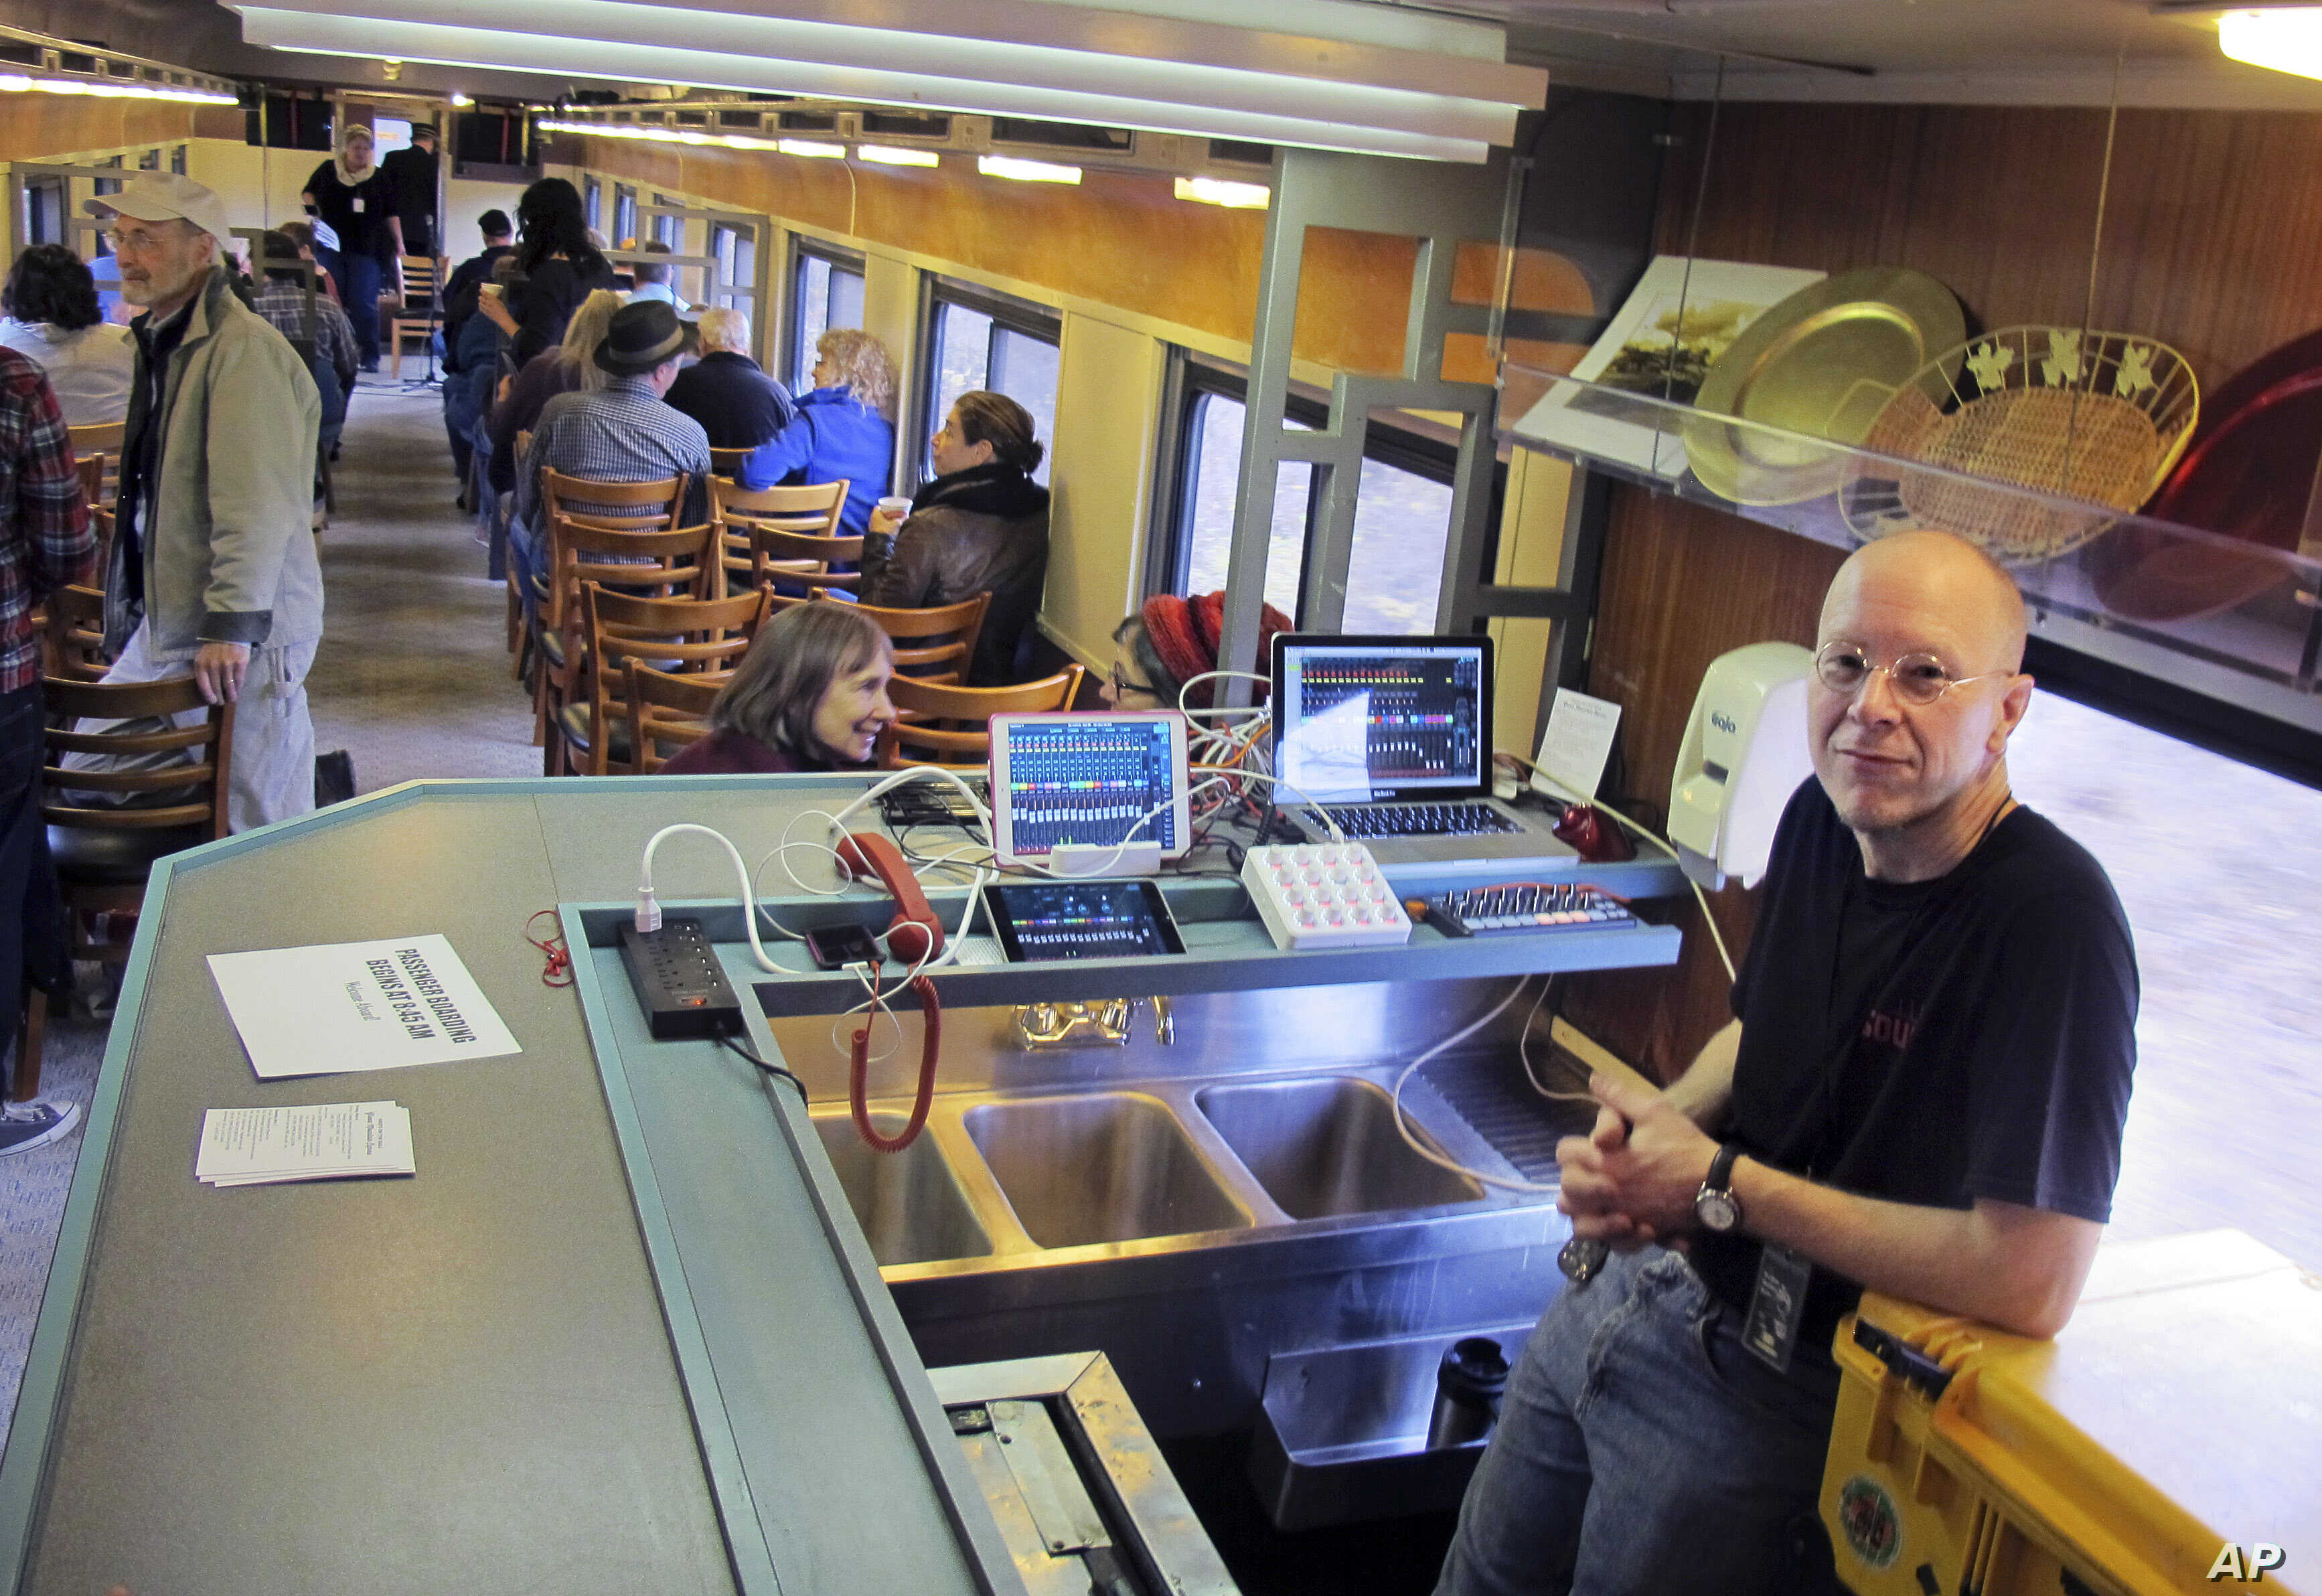 In this Saturday Nov. 7, 2015 photo, sound technician Dan Richardson rides aboard the Roots on the Rails music train during its first East Coast excursion between Bellows Falls and Rutland, Vt.